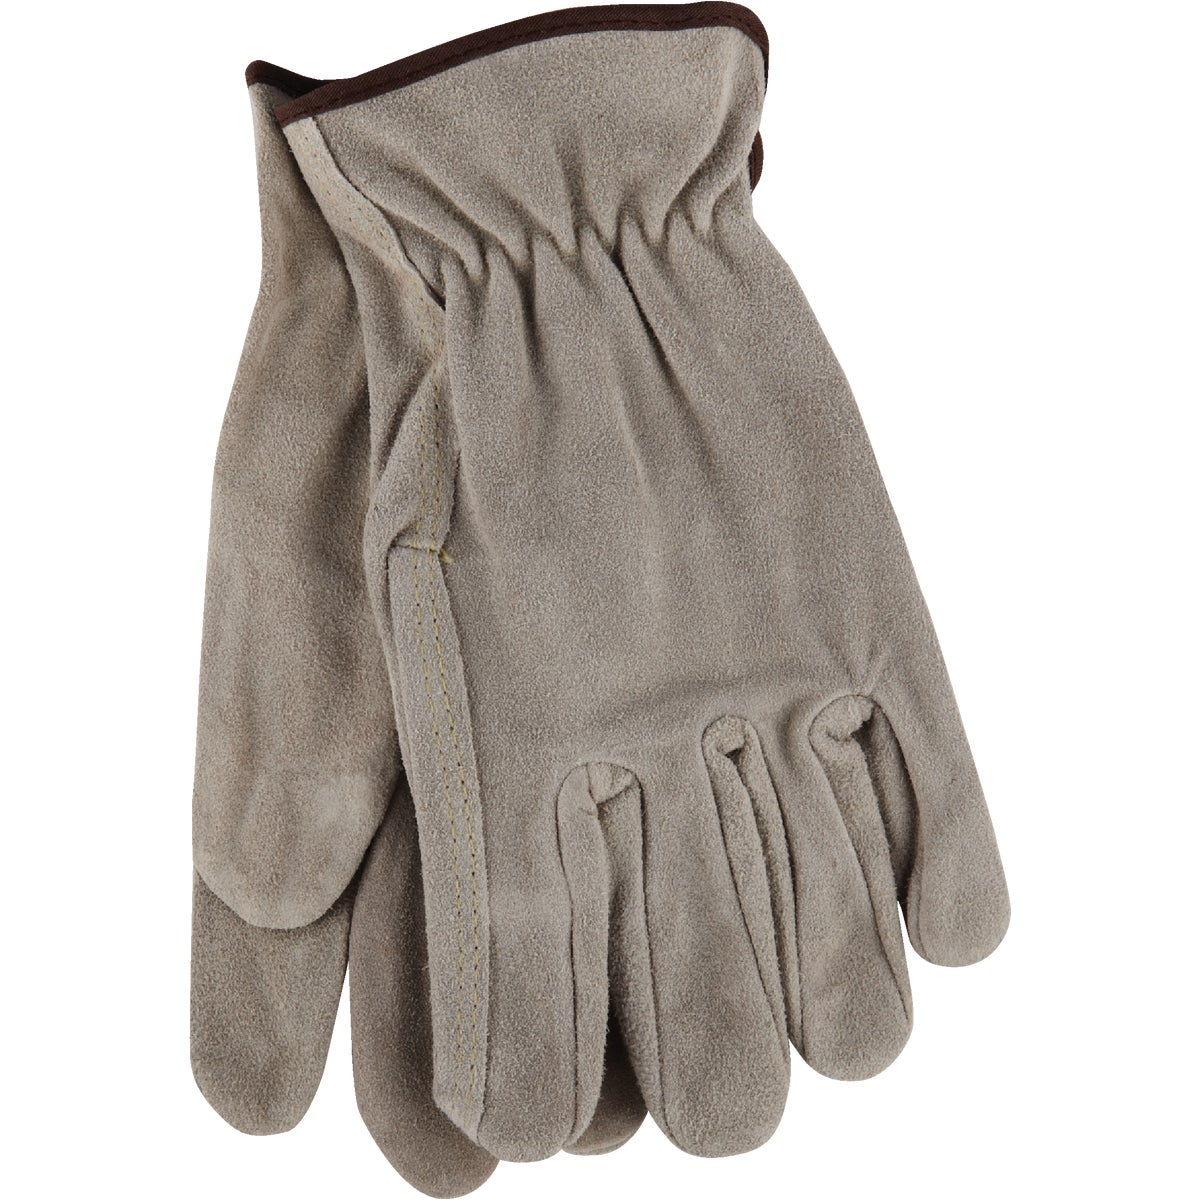 XL SUEDE LEATHER GLOVE